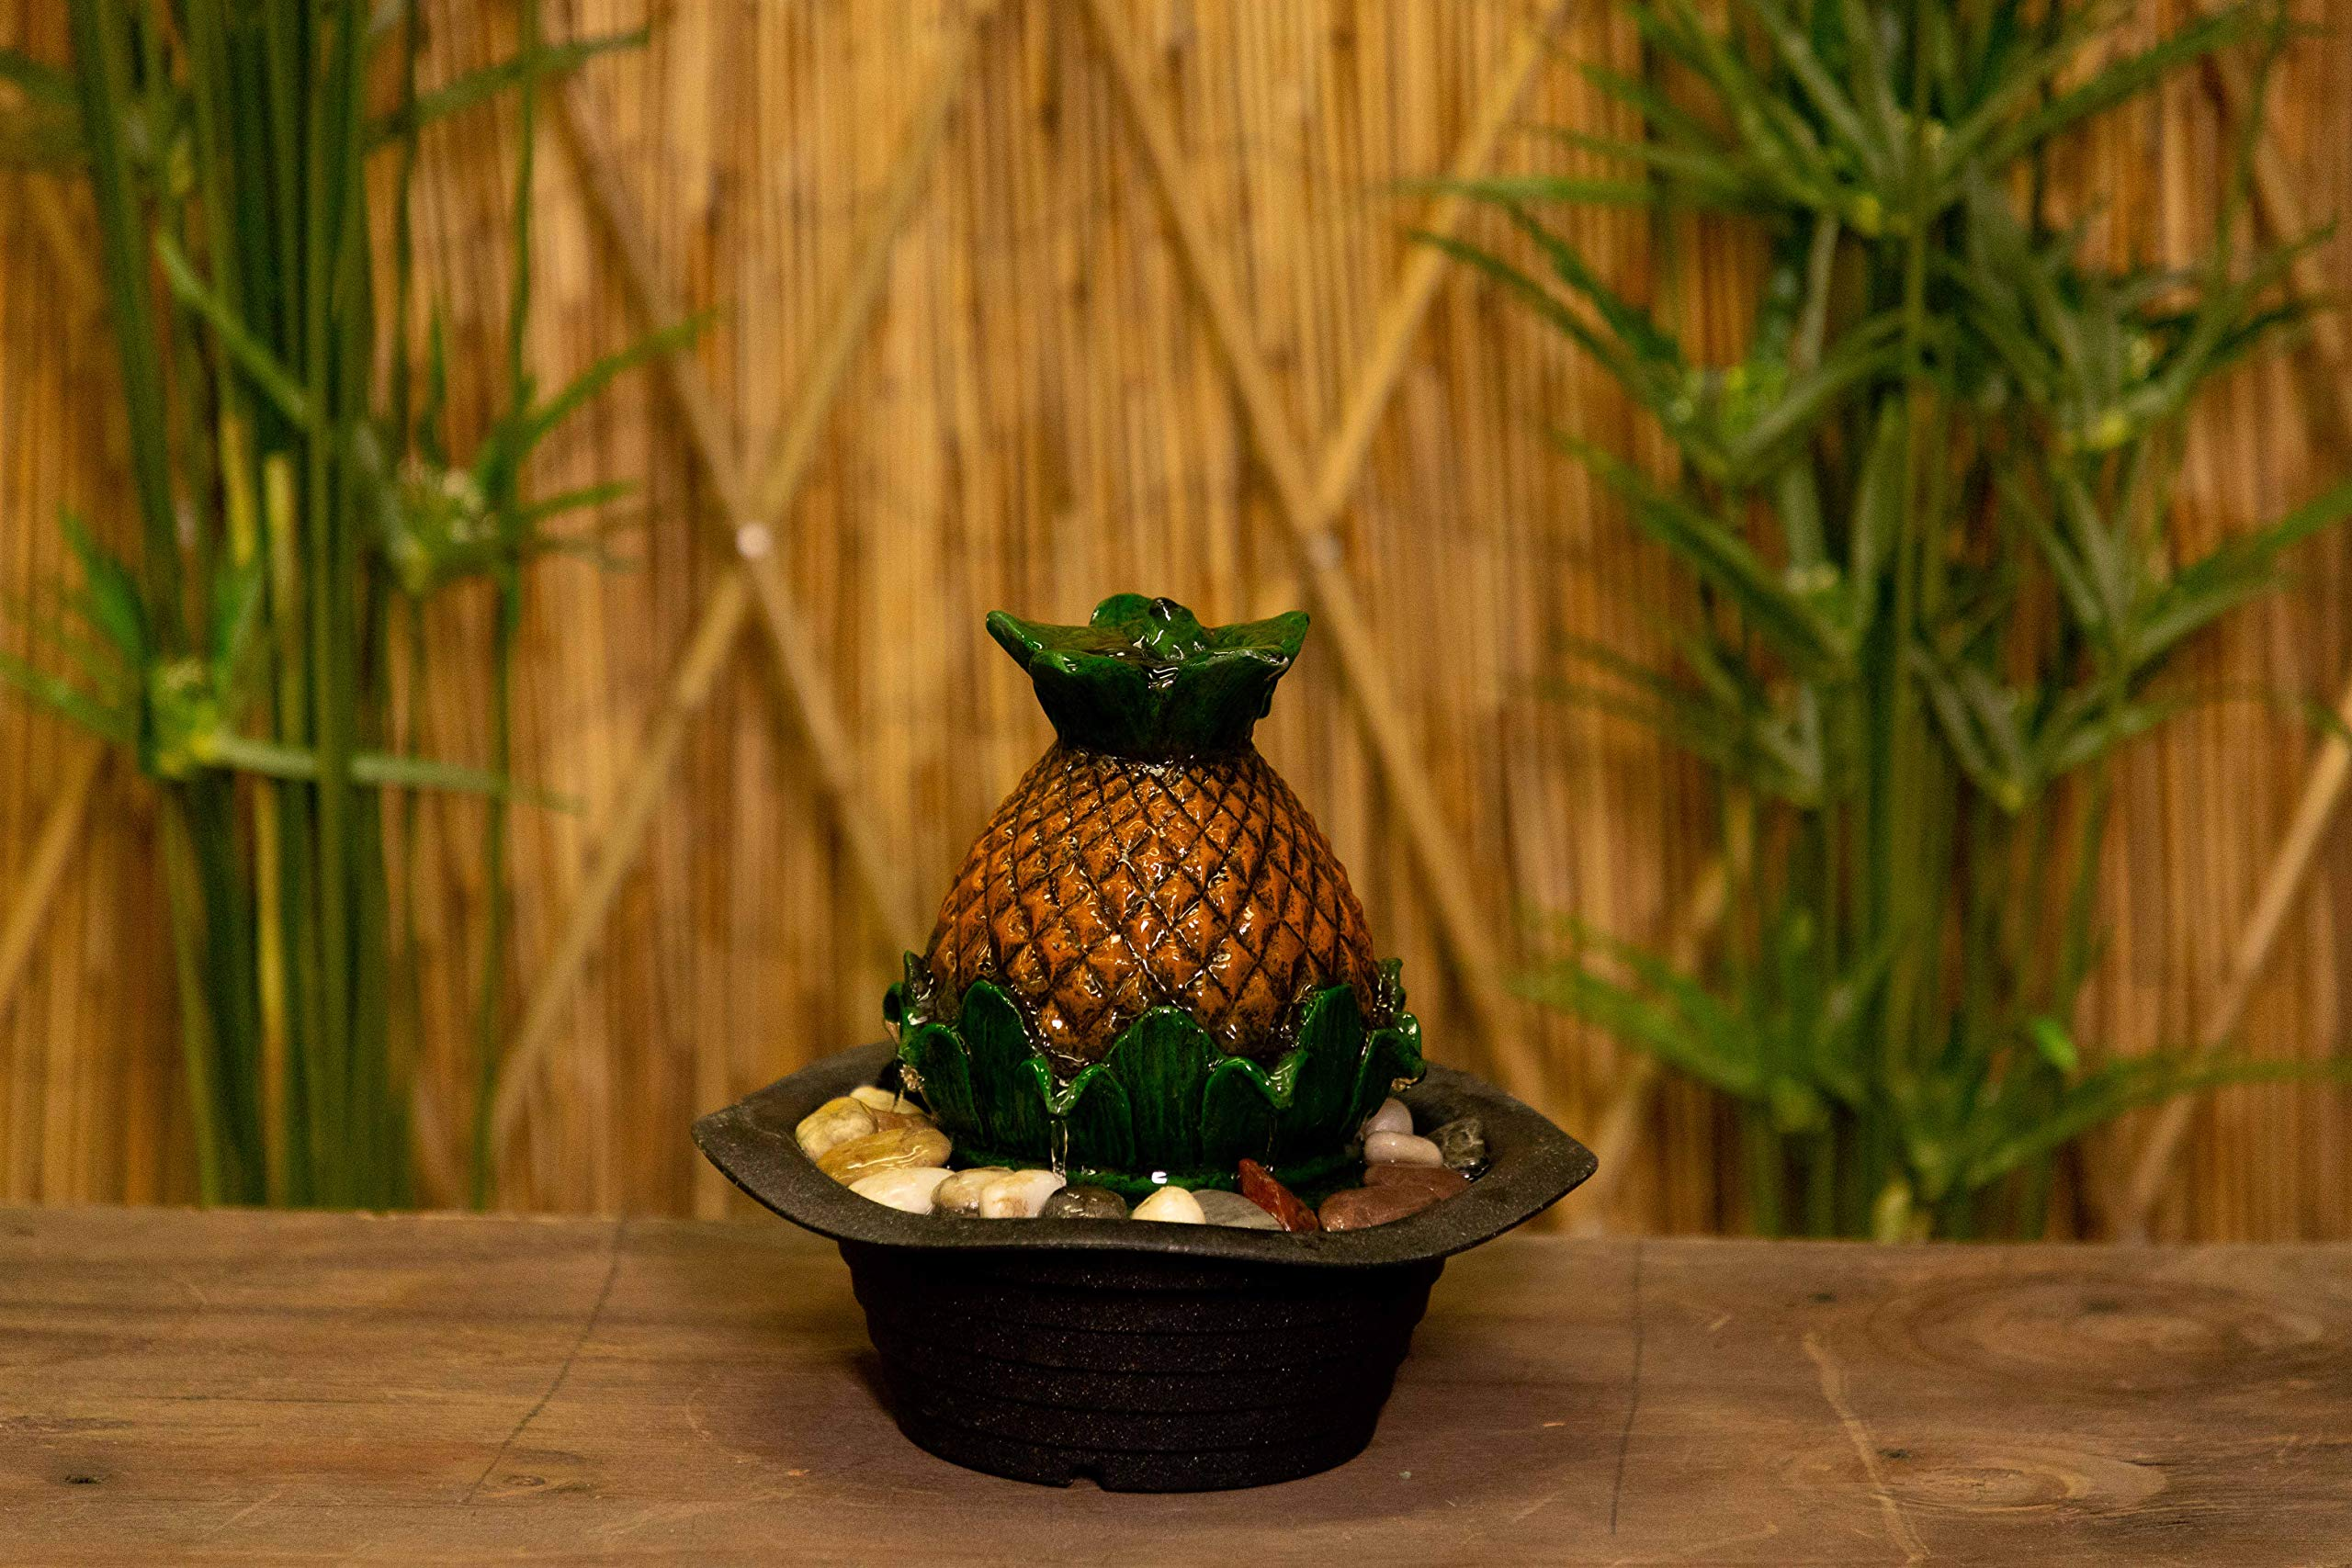 Alpine Corporation GIL1626 Tropical Pineapple Tabletop Tranquility Fountain w/Stones, 8 Inch Tall, Brown